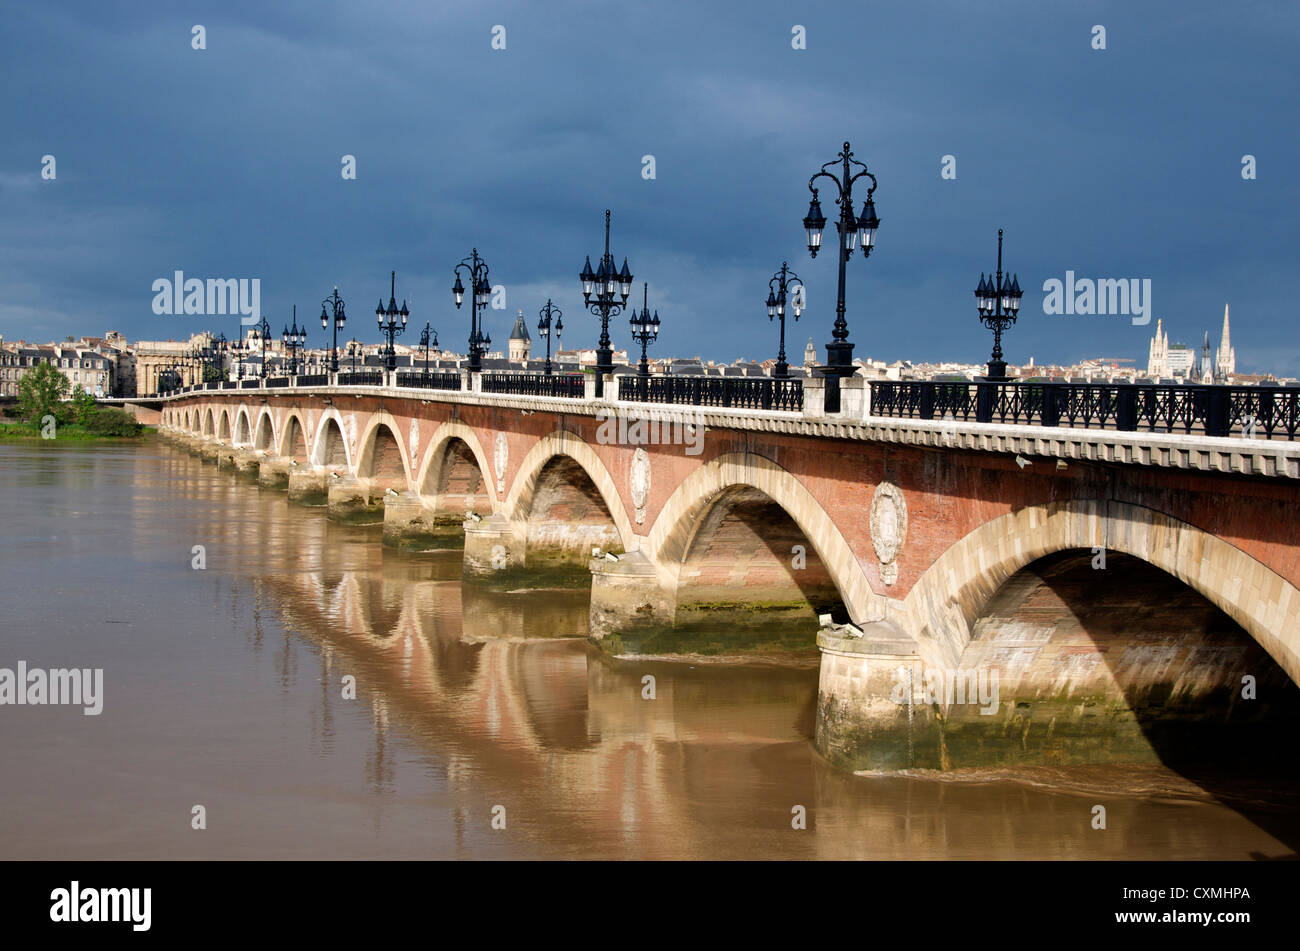 Le Pont de Pierre pont traversant la Garonne, Bordeaux, France dans le centre-ville Photo Stock